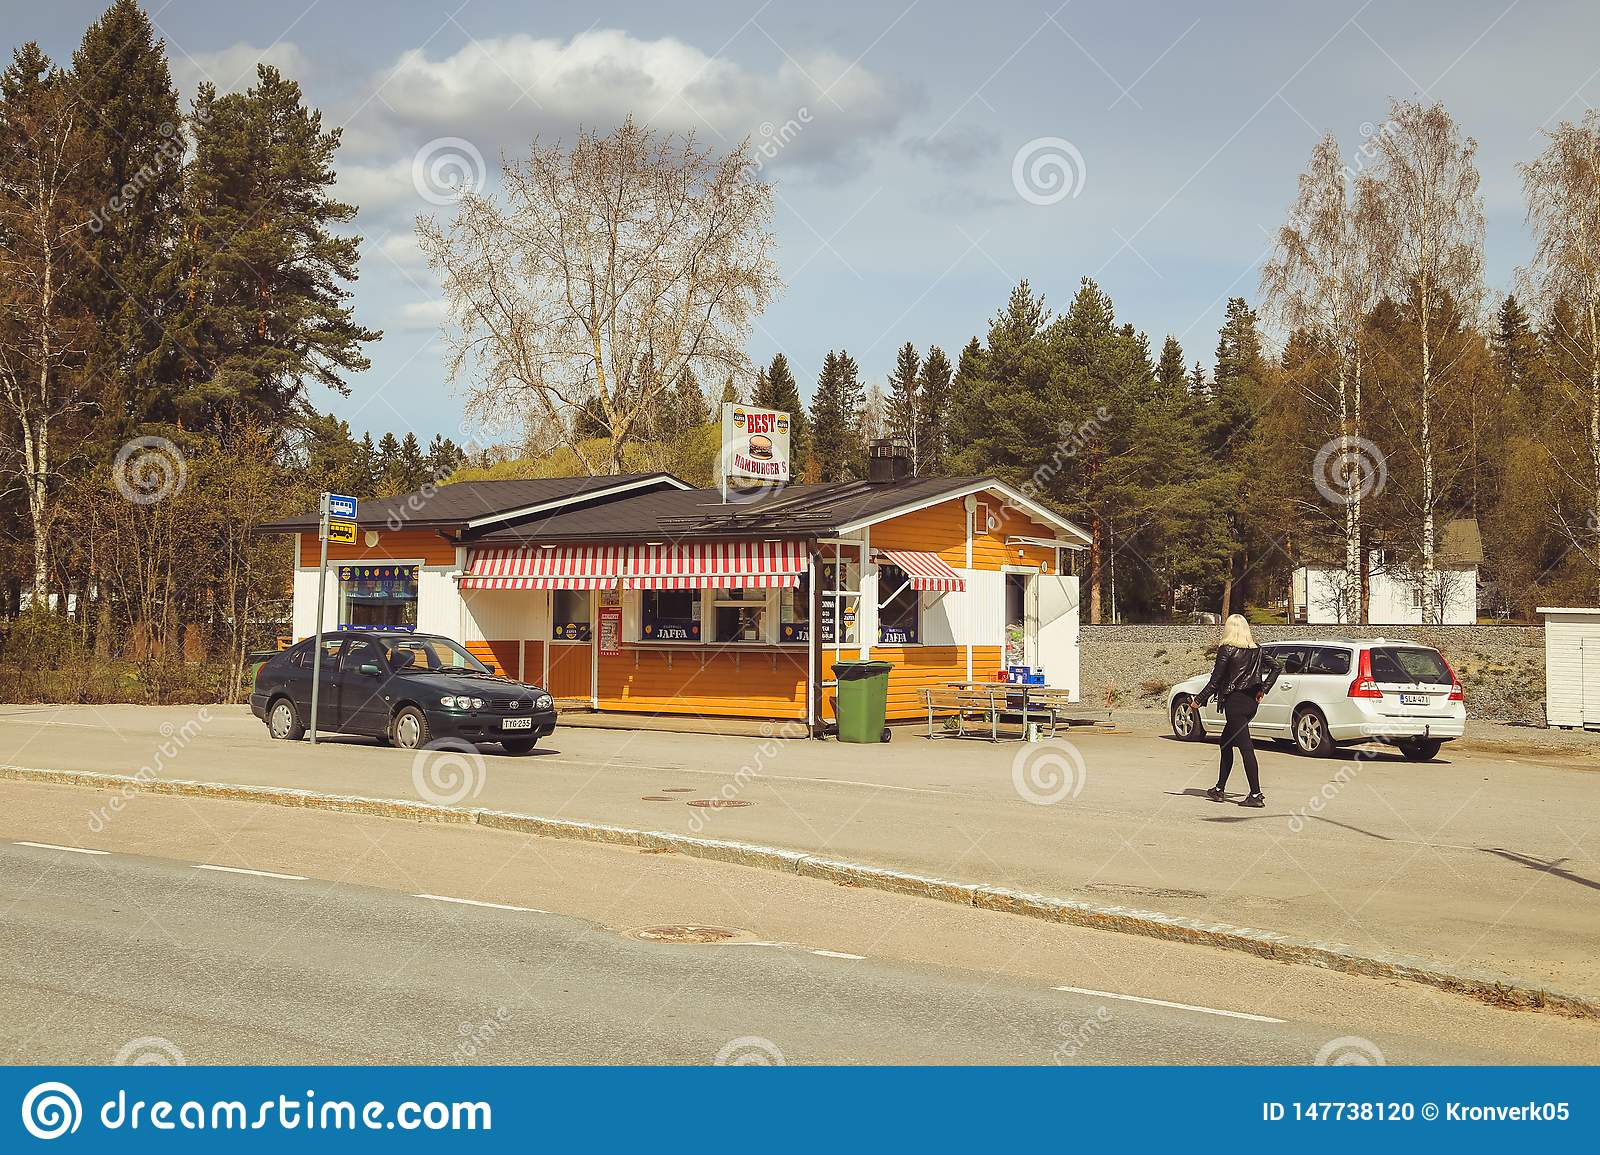 A small town in Finland, a roadside cafe, cars on the road and shops. Summer day of the Finnish town. coffee Jaffa